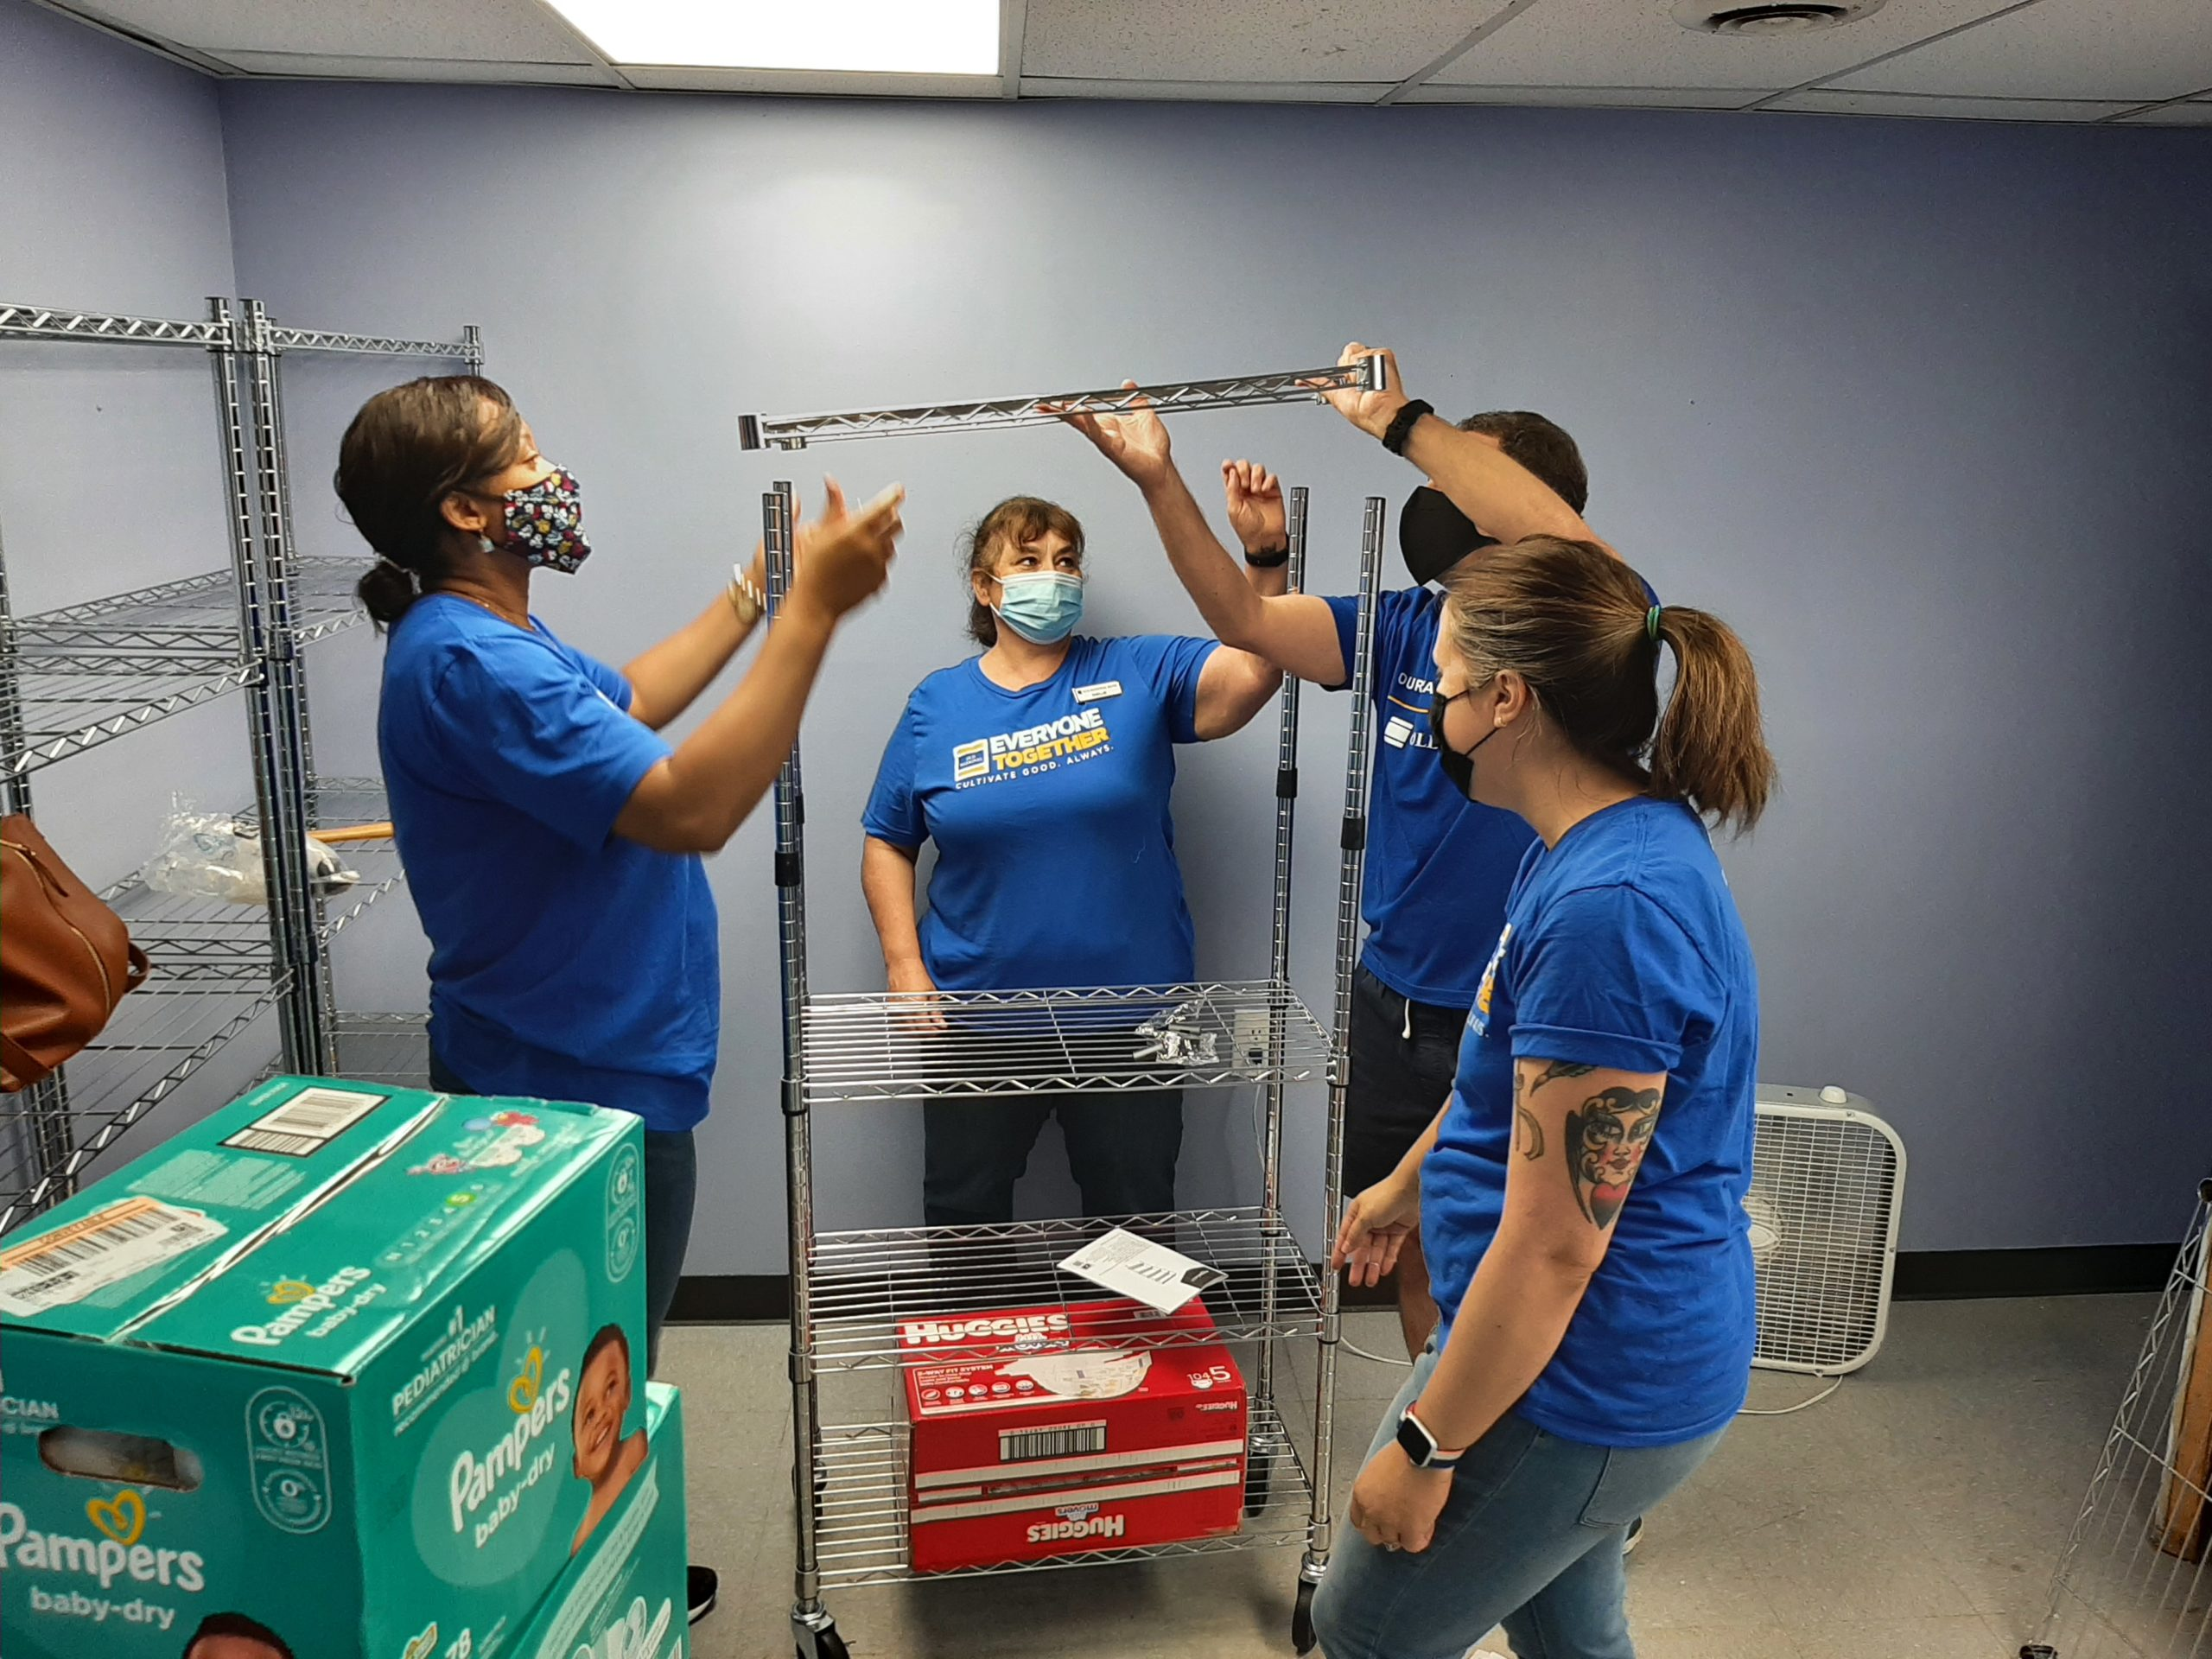 Four volunteers putting together shelving